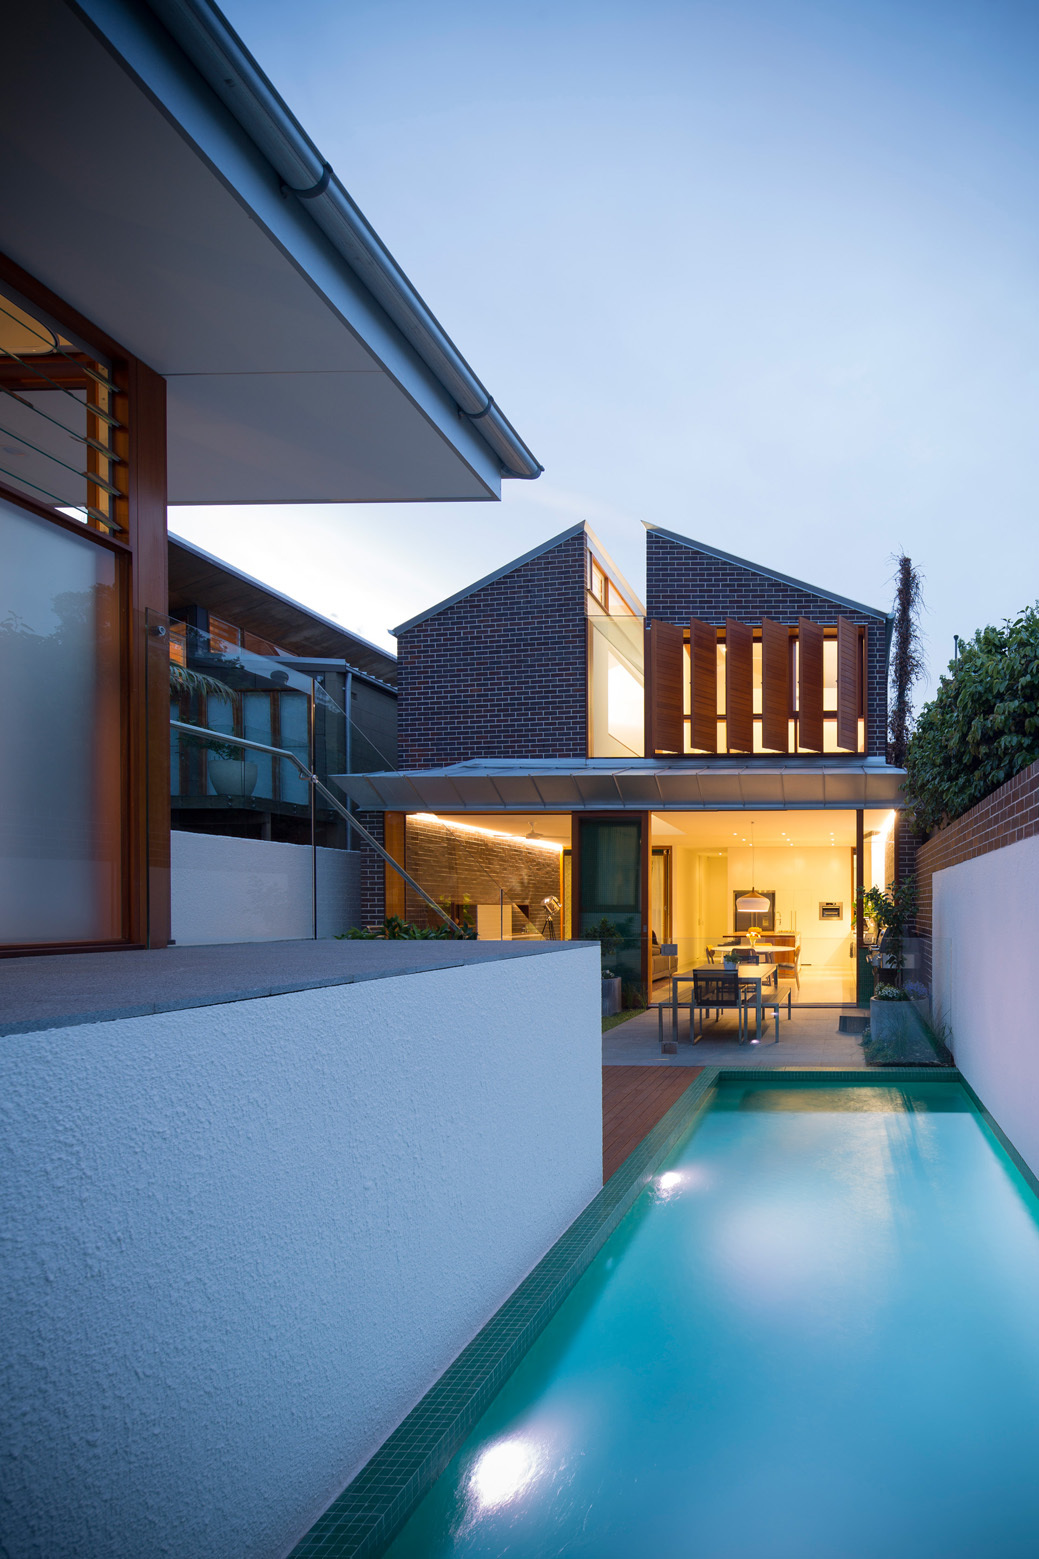 Green House by Carter Williamson Architects (via Lunchbox Architect)